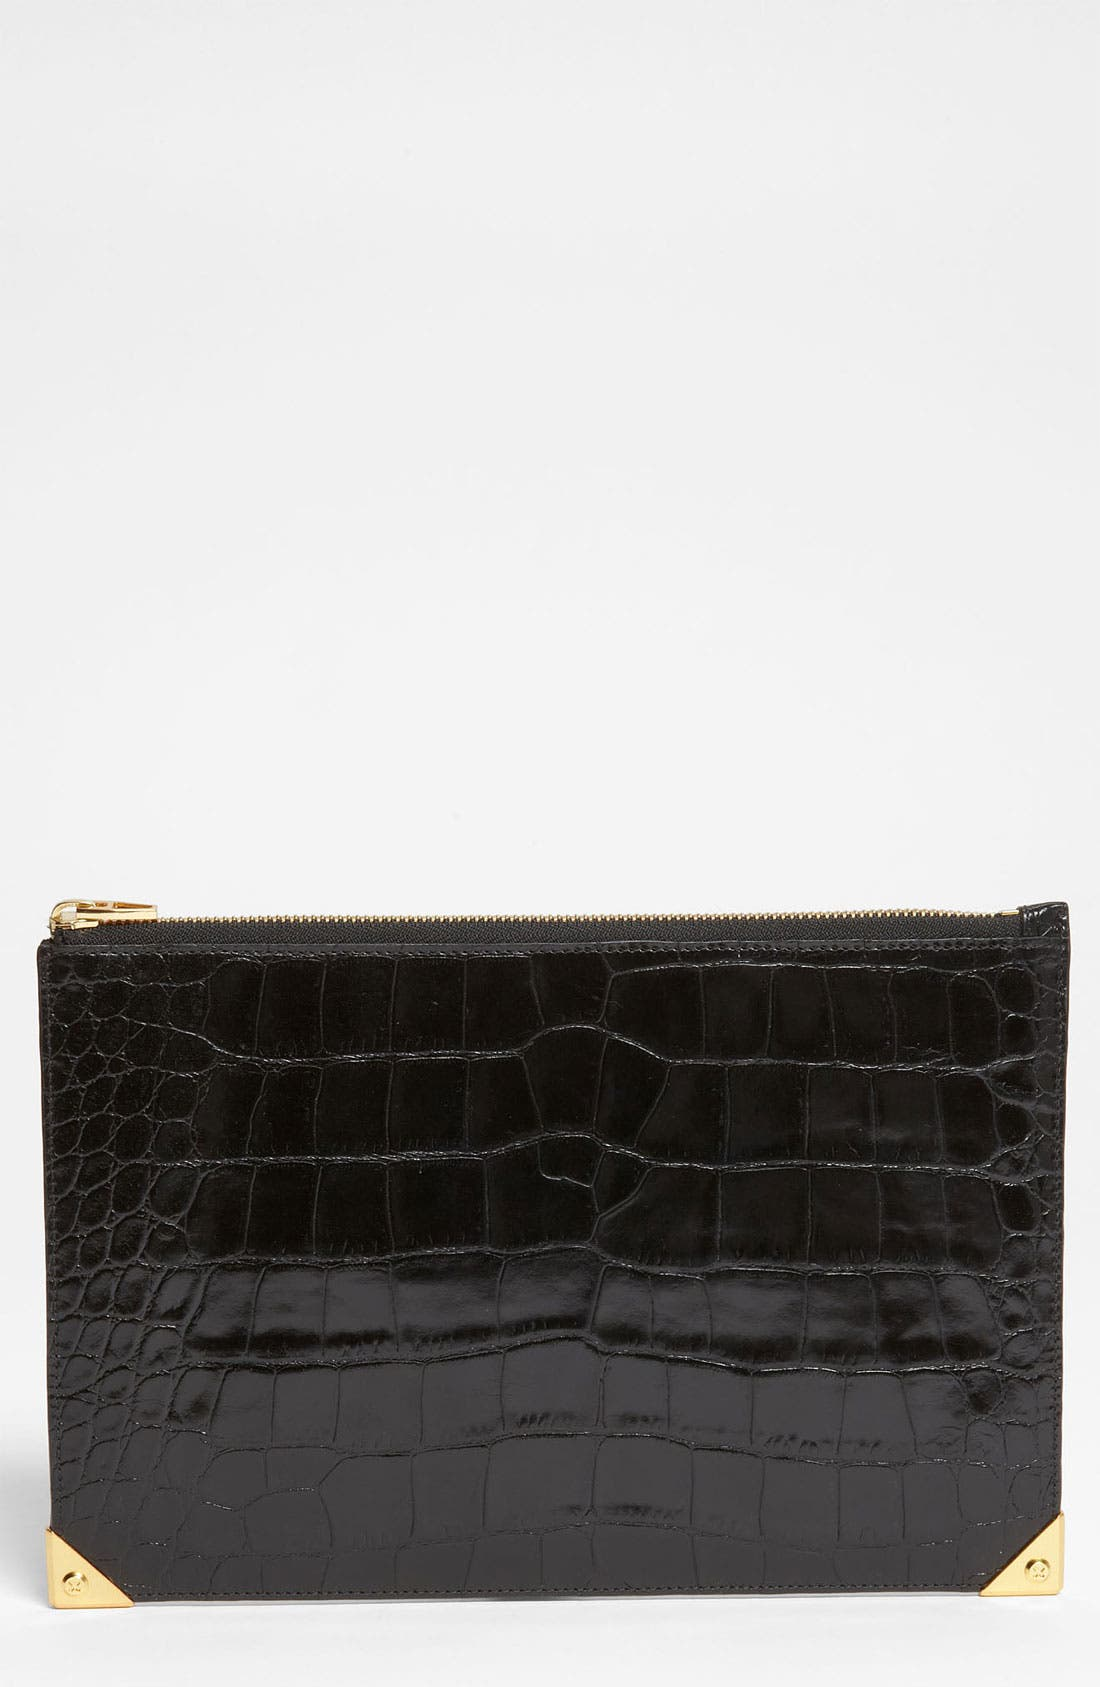 Main Image - Alexander Wang 'Prisma' Embossed Leather Clutch